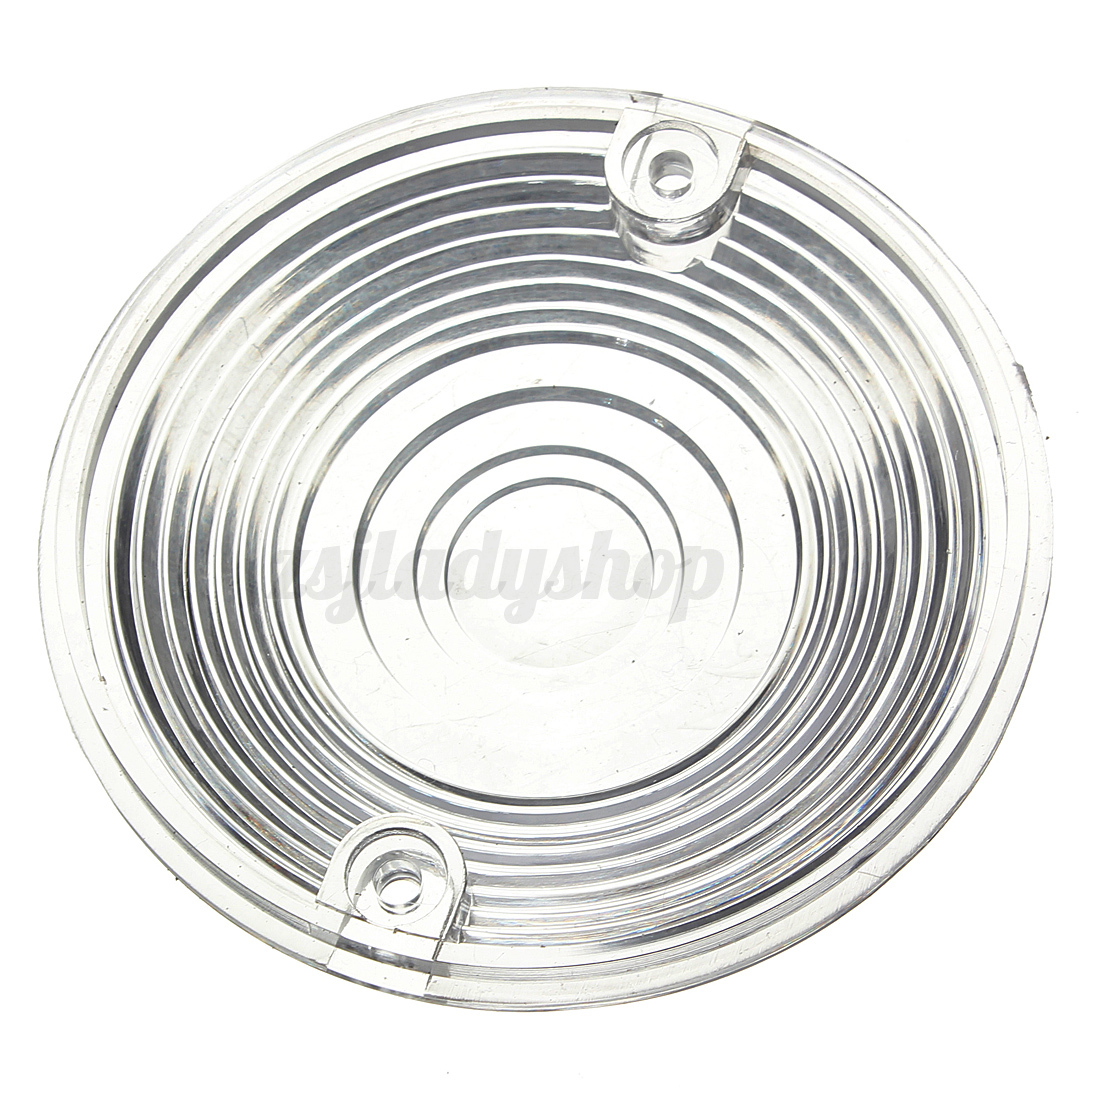 391529805457 in addition 262236237382 in addition Fiandiceledt additionally 272297039839 in addition Cree Xbd Dc12 24v White Canbus 30w T20 7440 Led Backup Light Brake Light. on harley turn signal bulbs